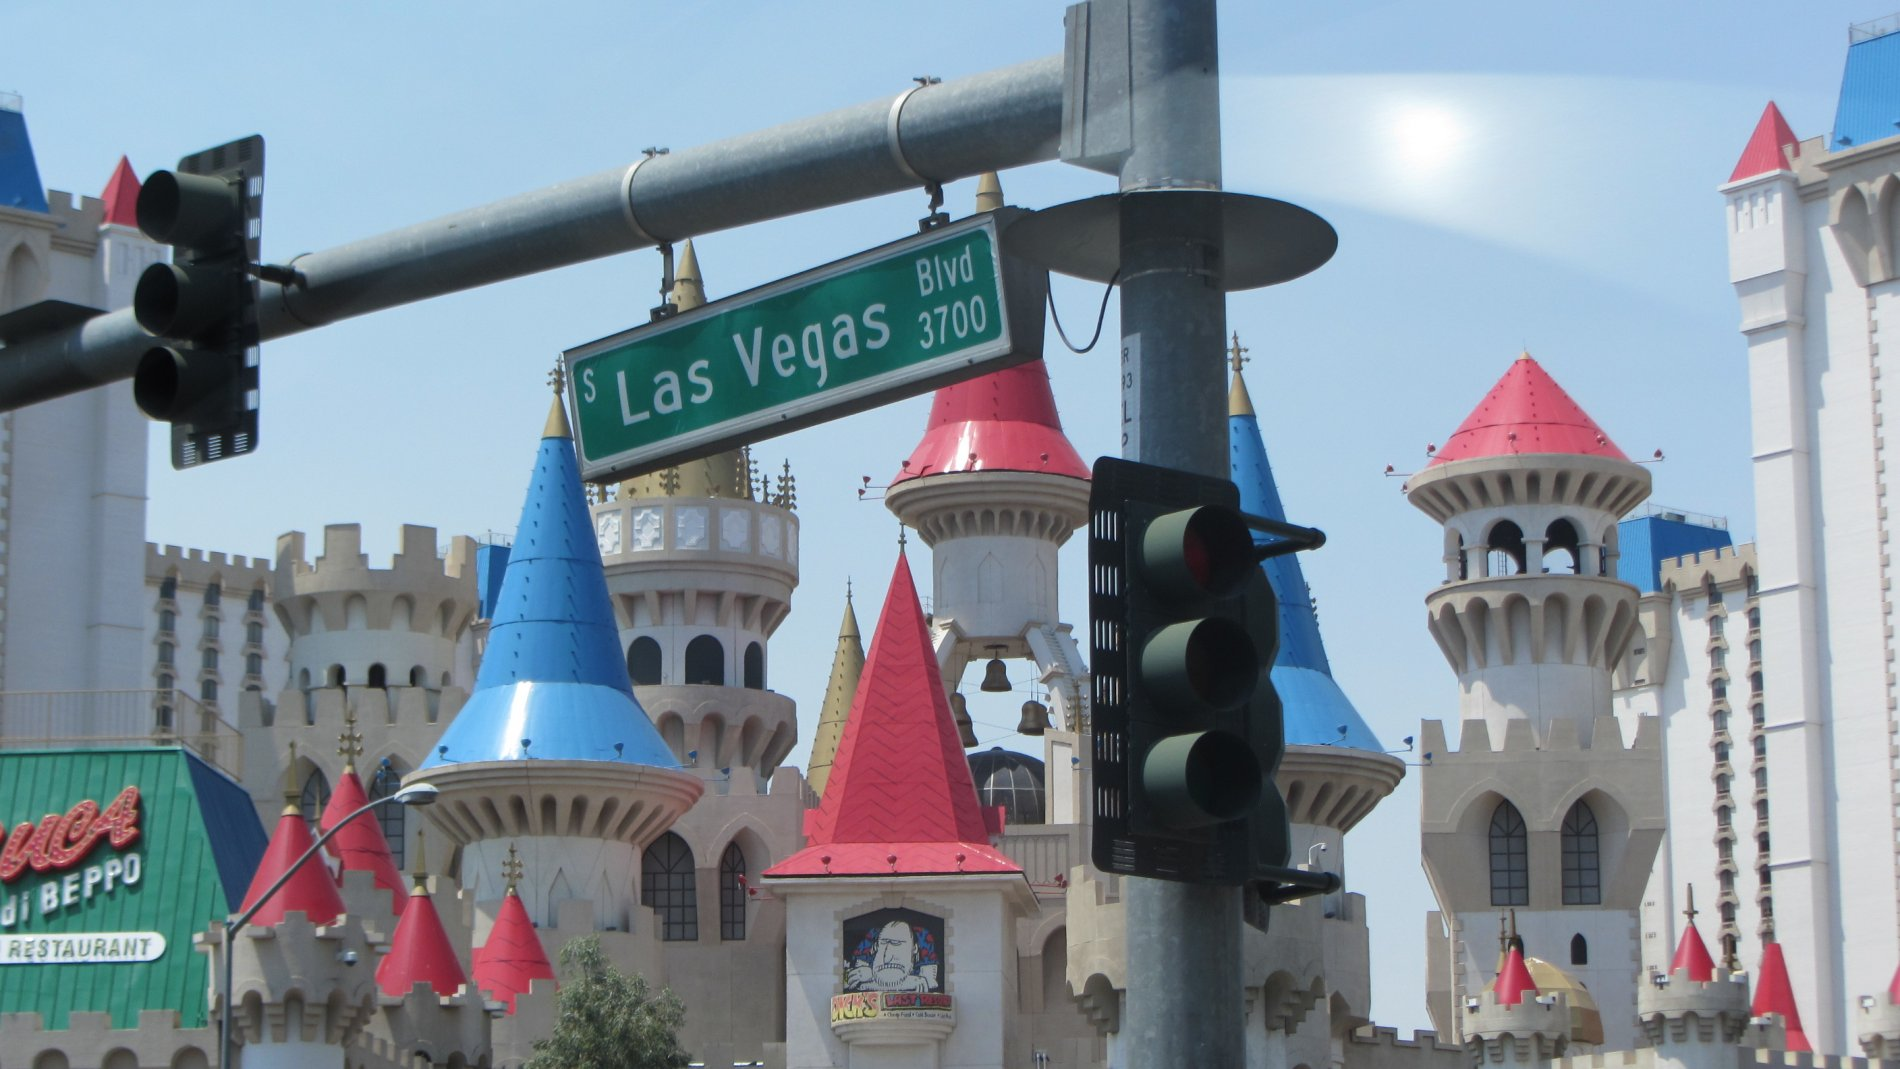 Las Vegas_67.JPG-commment